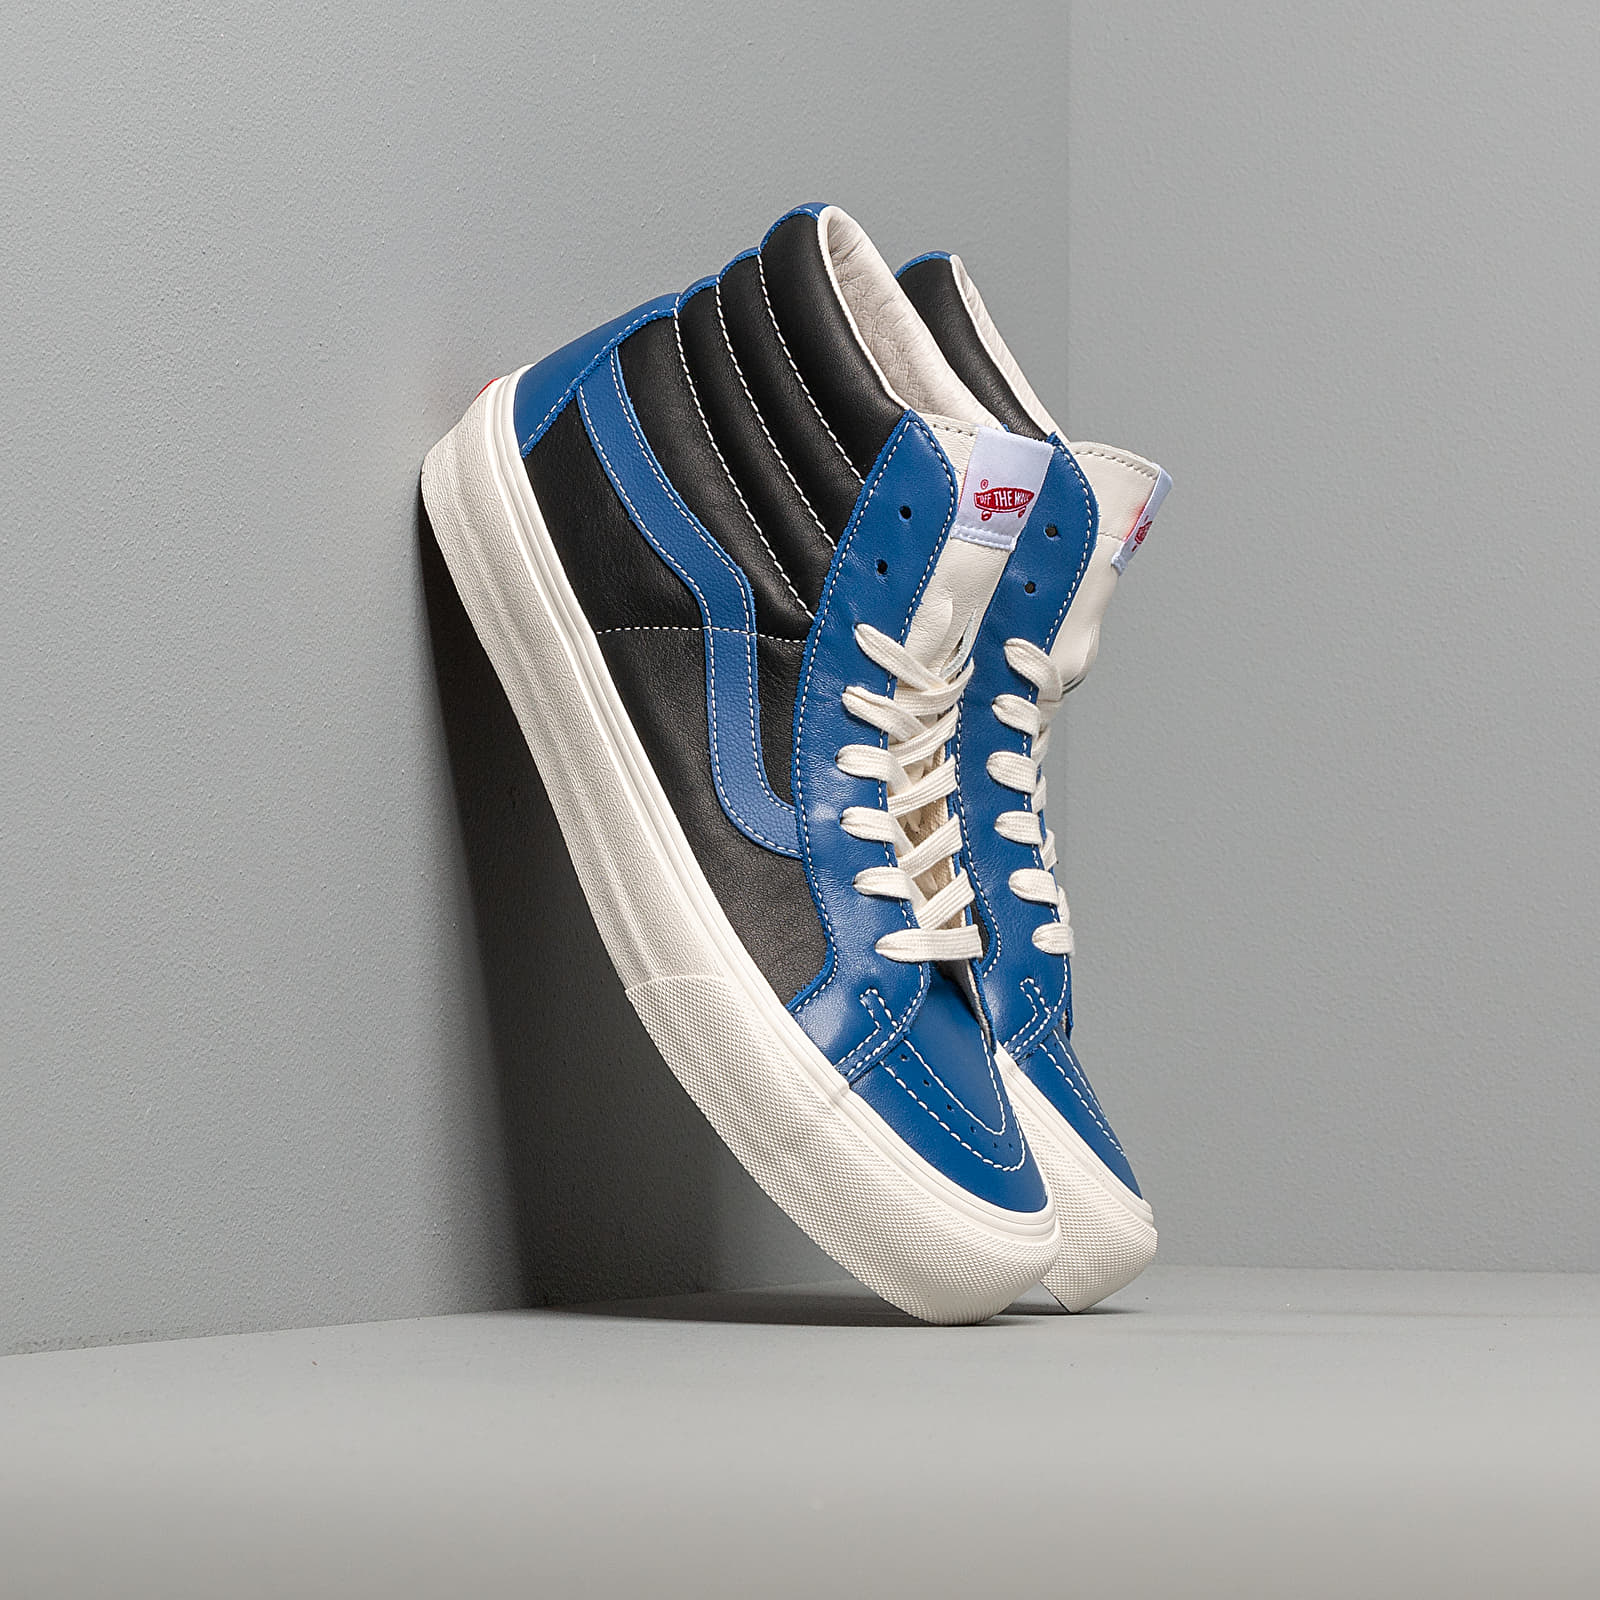 Vans Sk8-Hi Reissue Vl (Leather)